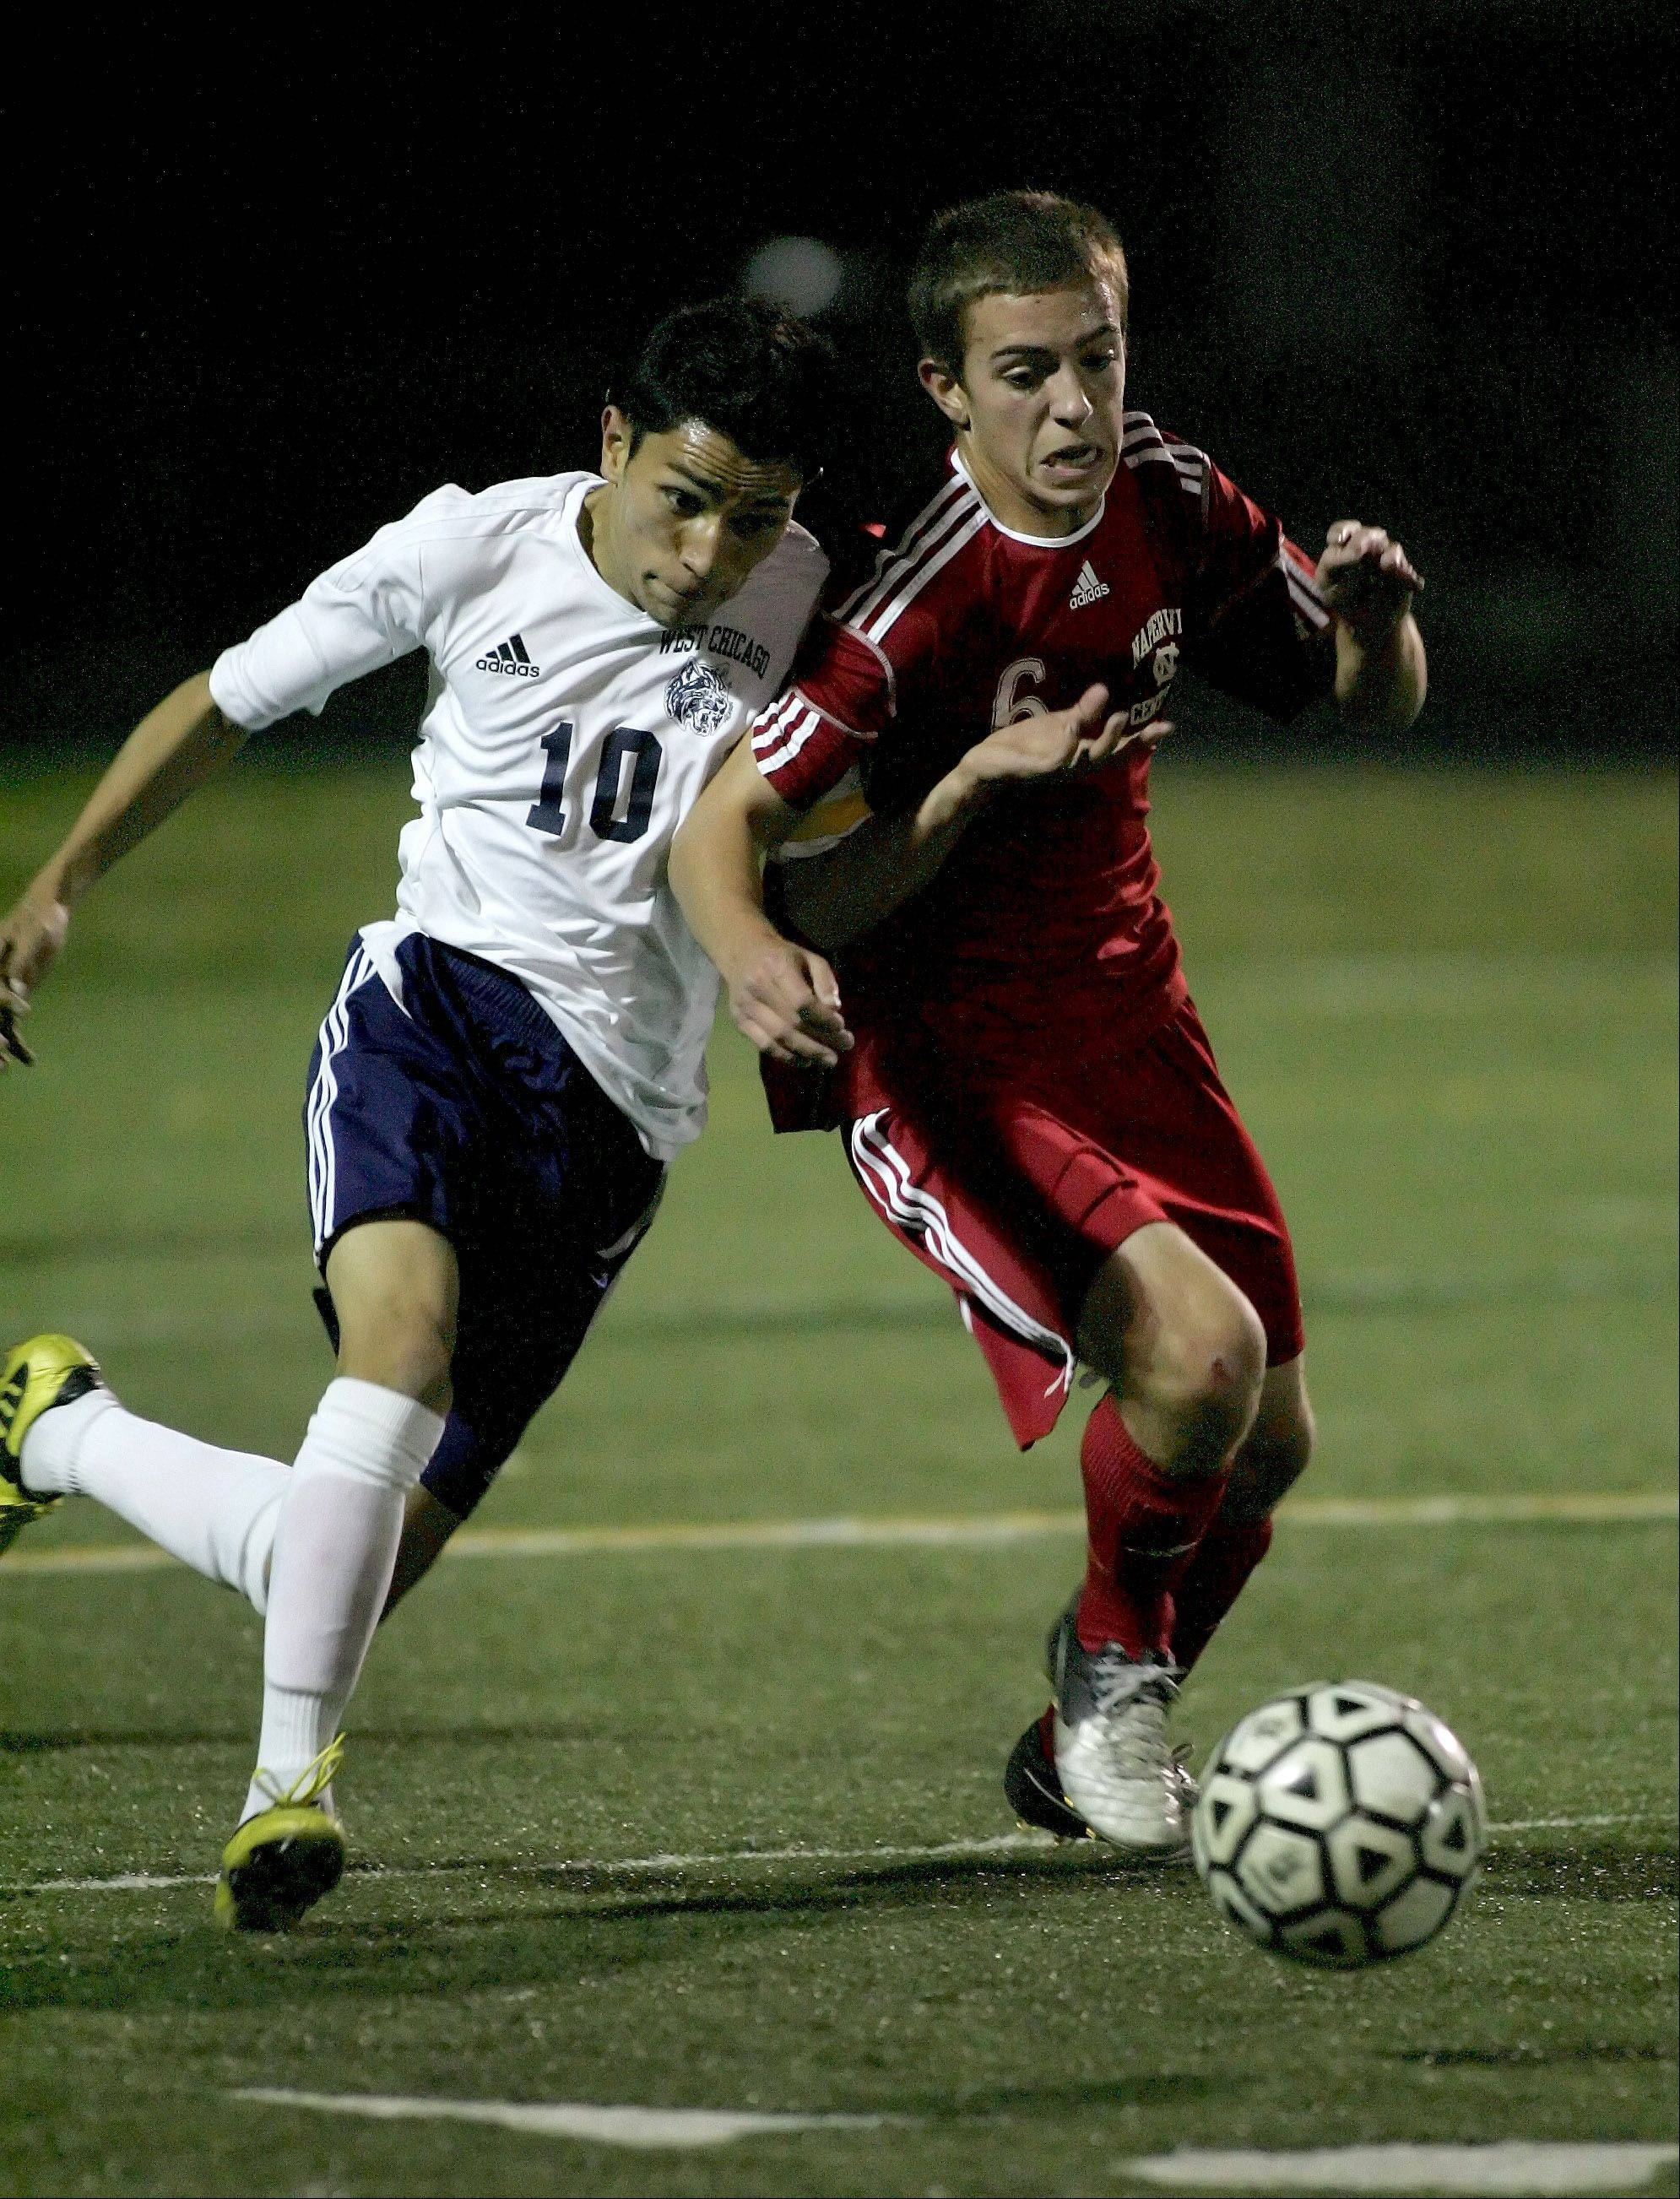 Diego Munoz of West Chicago, left and Mike West, righ, of Naperville Central fight for control of the ball in boys soccer action on Tuesday.